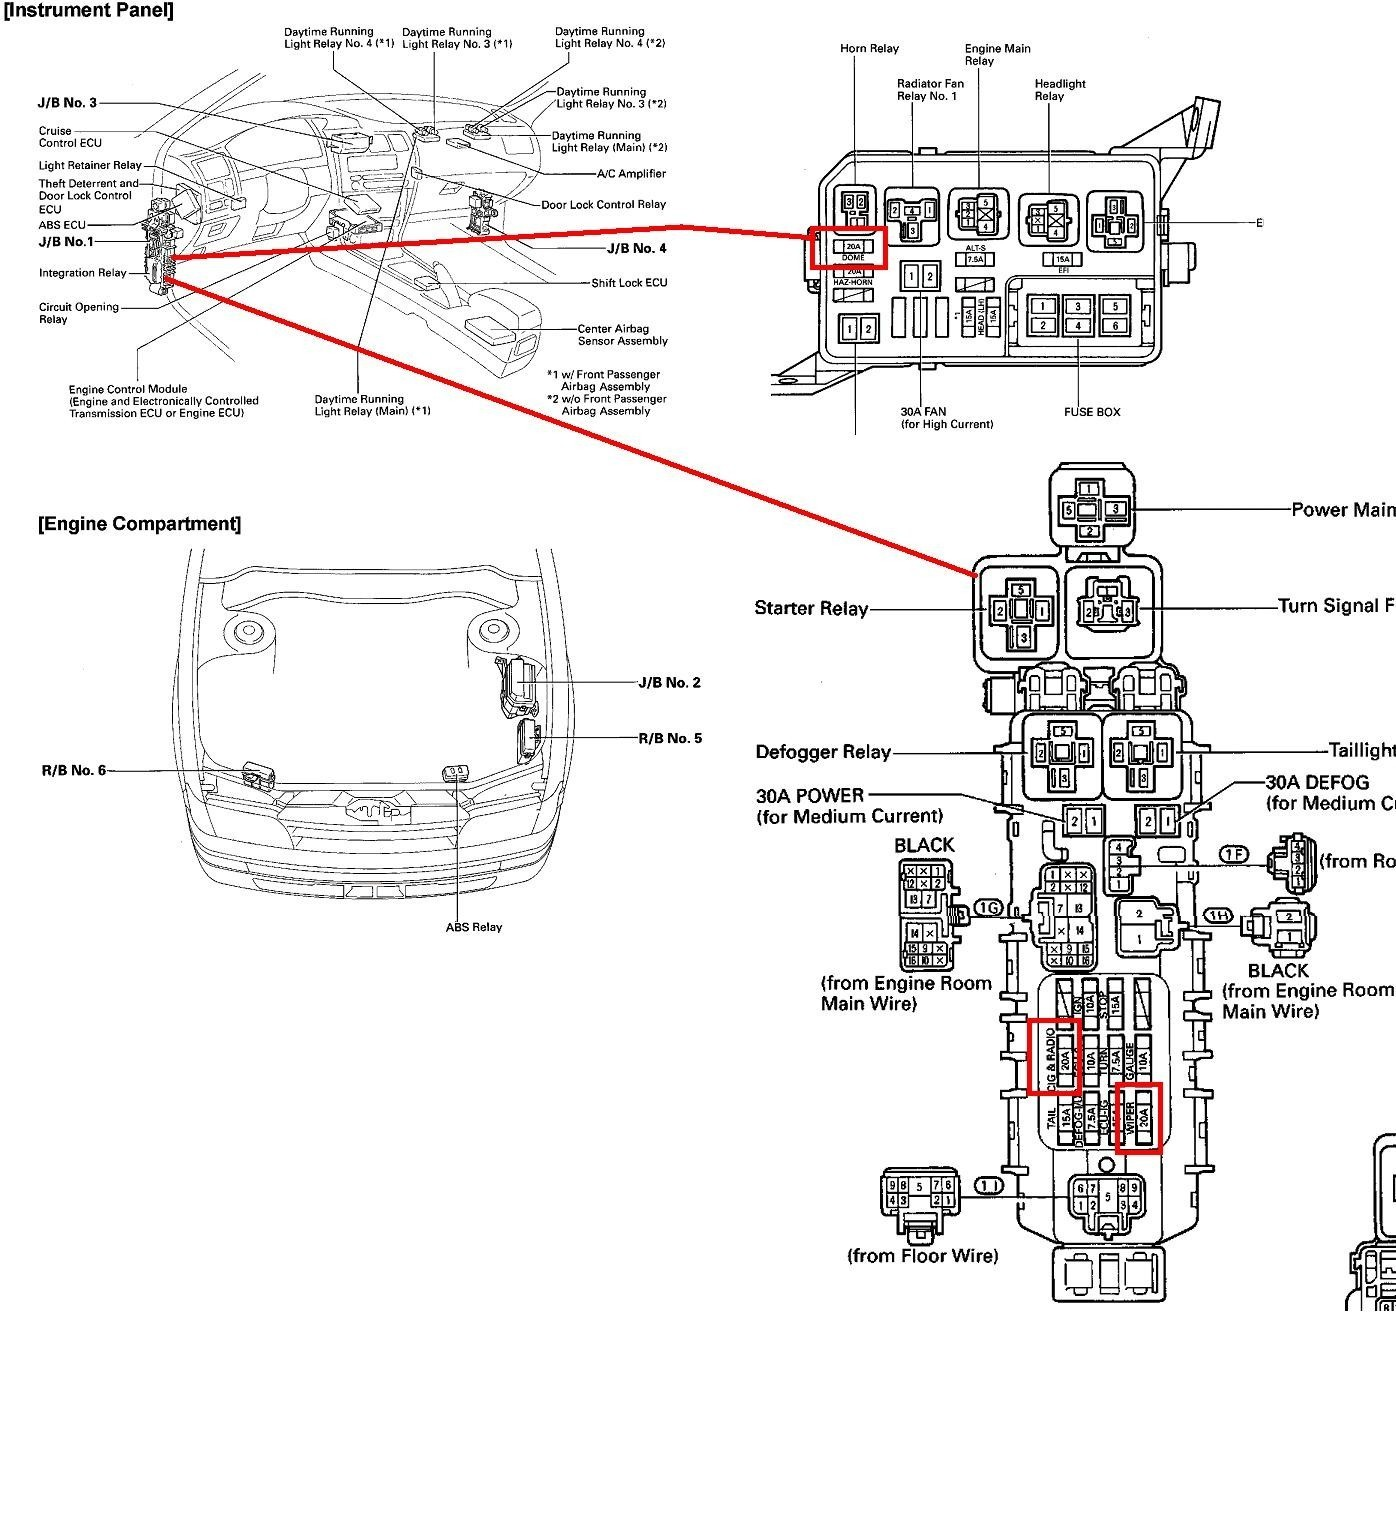 1992 Honda Accord Wiring Diagram Pdf Detailed Schematics Toyota Prius Engine Check Light Unique Window